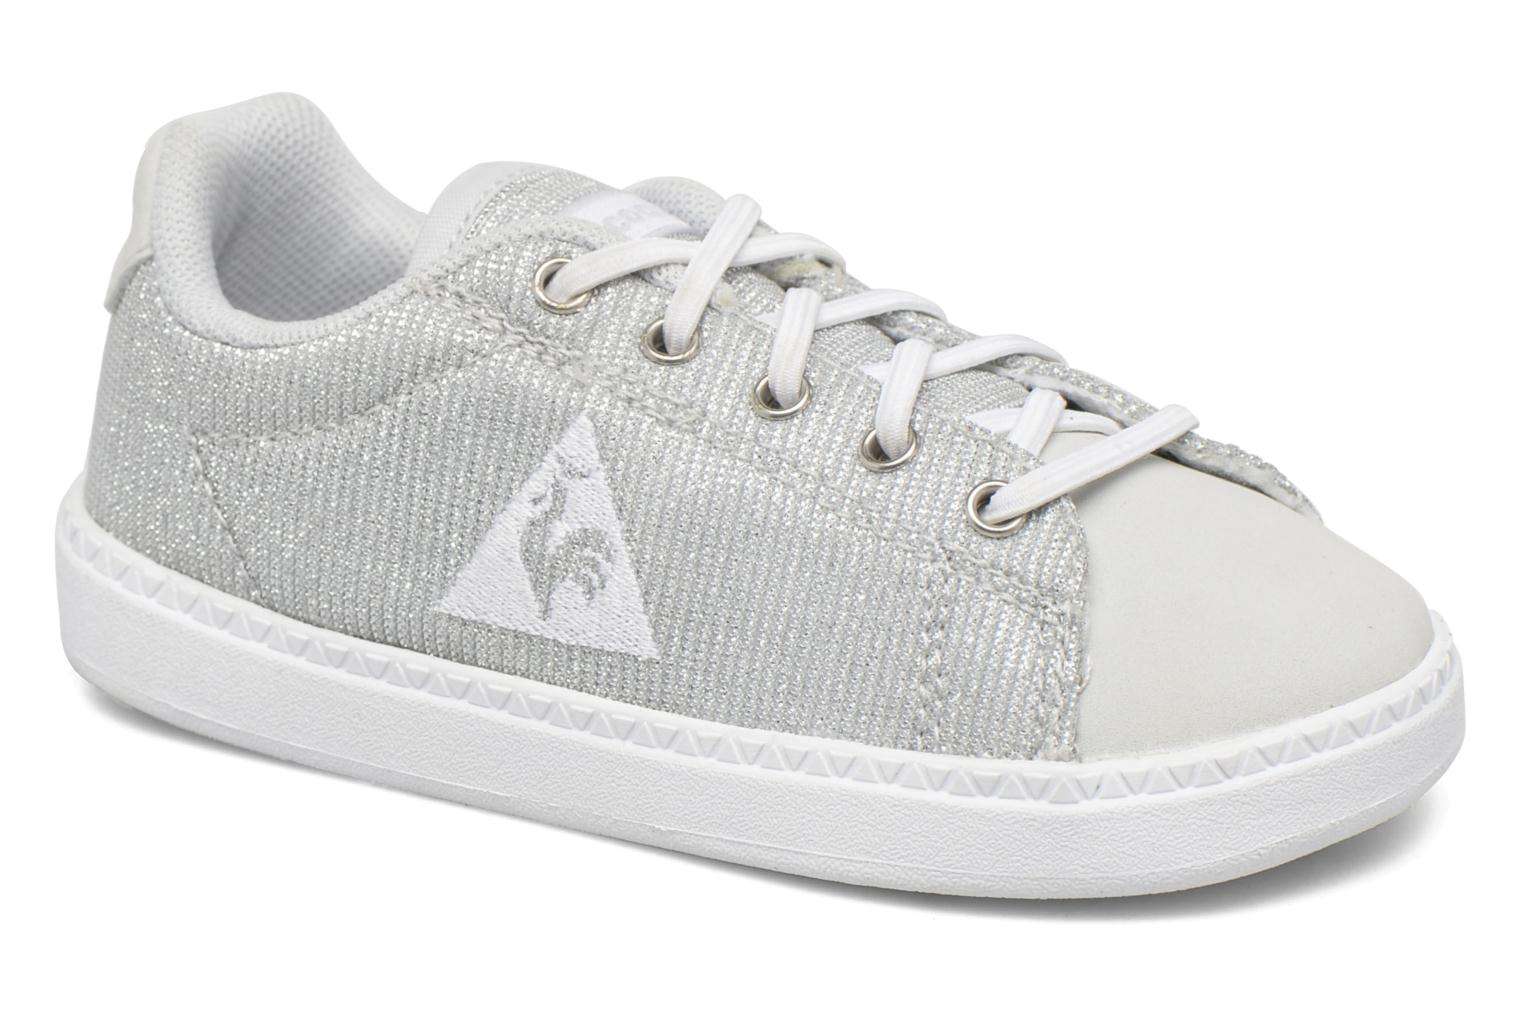 Sneakers Courtone Inf by Le Coq Sportif